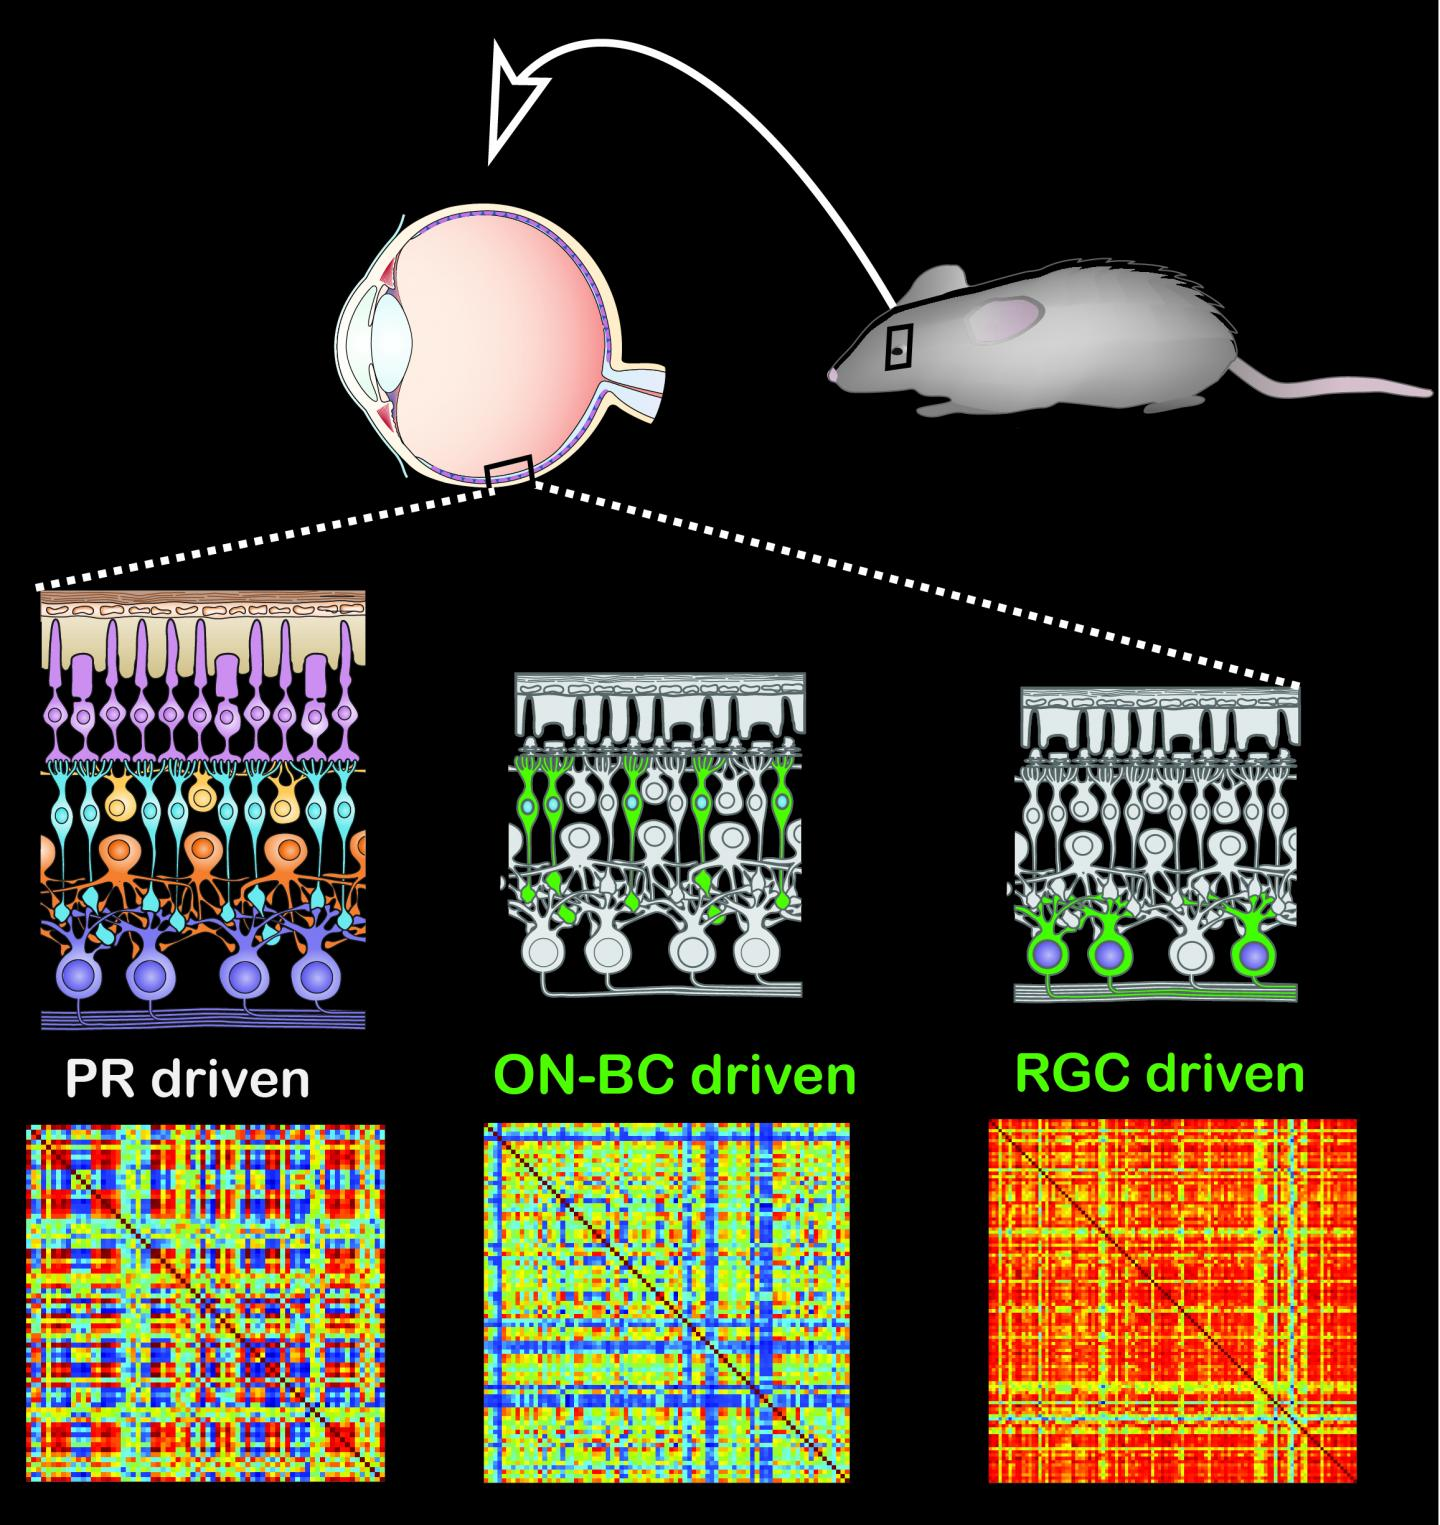 Light Response of Normal & Altered Mouse Retina